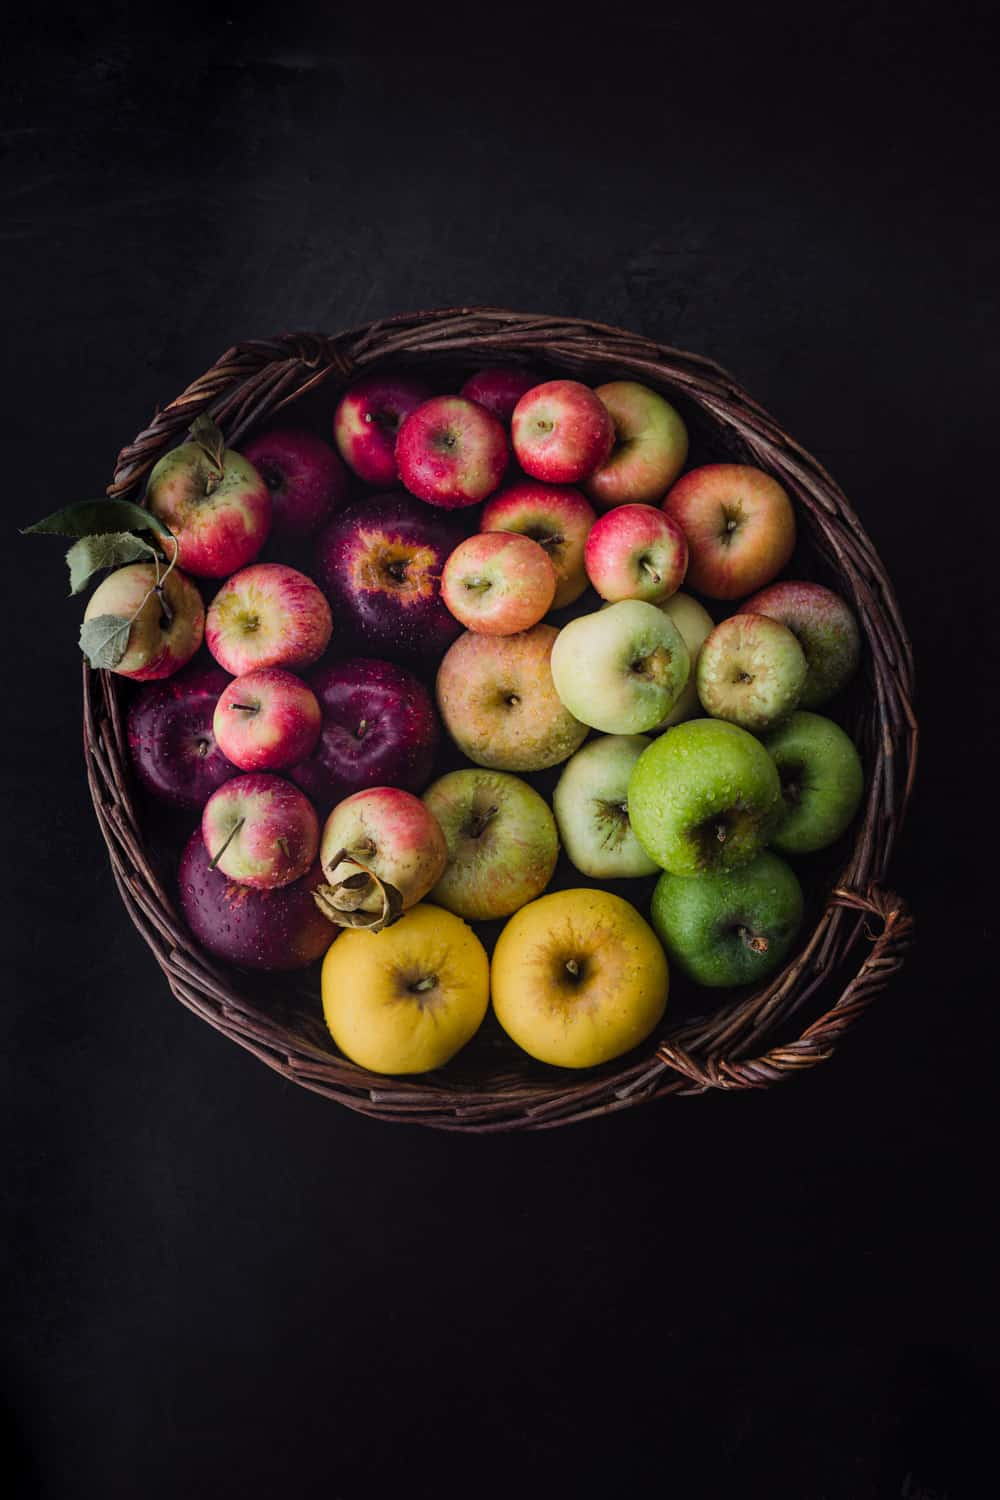 Apples in every color of the rainbow! In a woven basket; overhead shot on a black background.